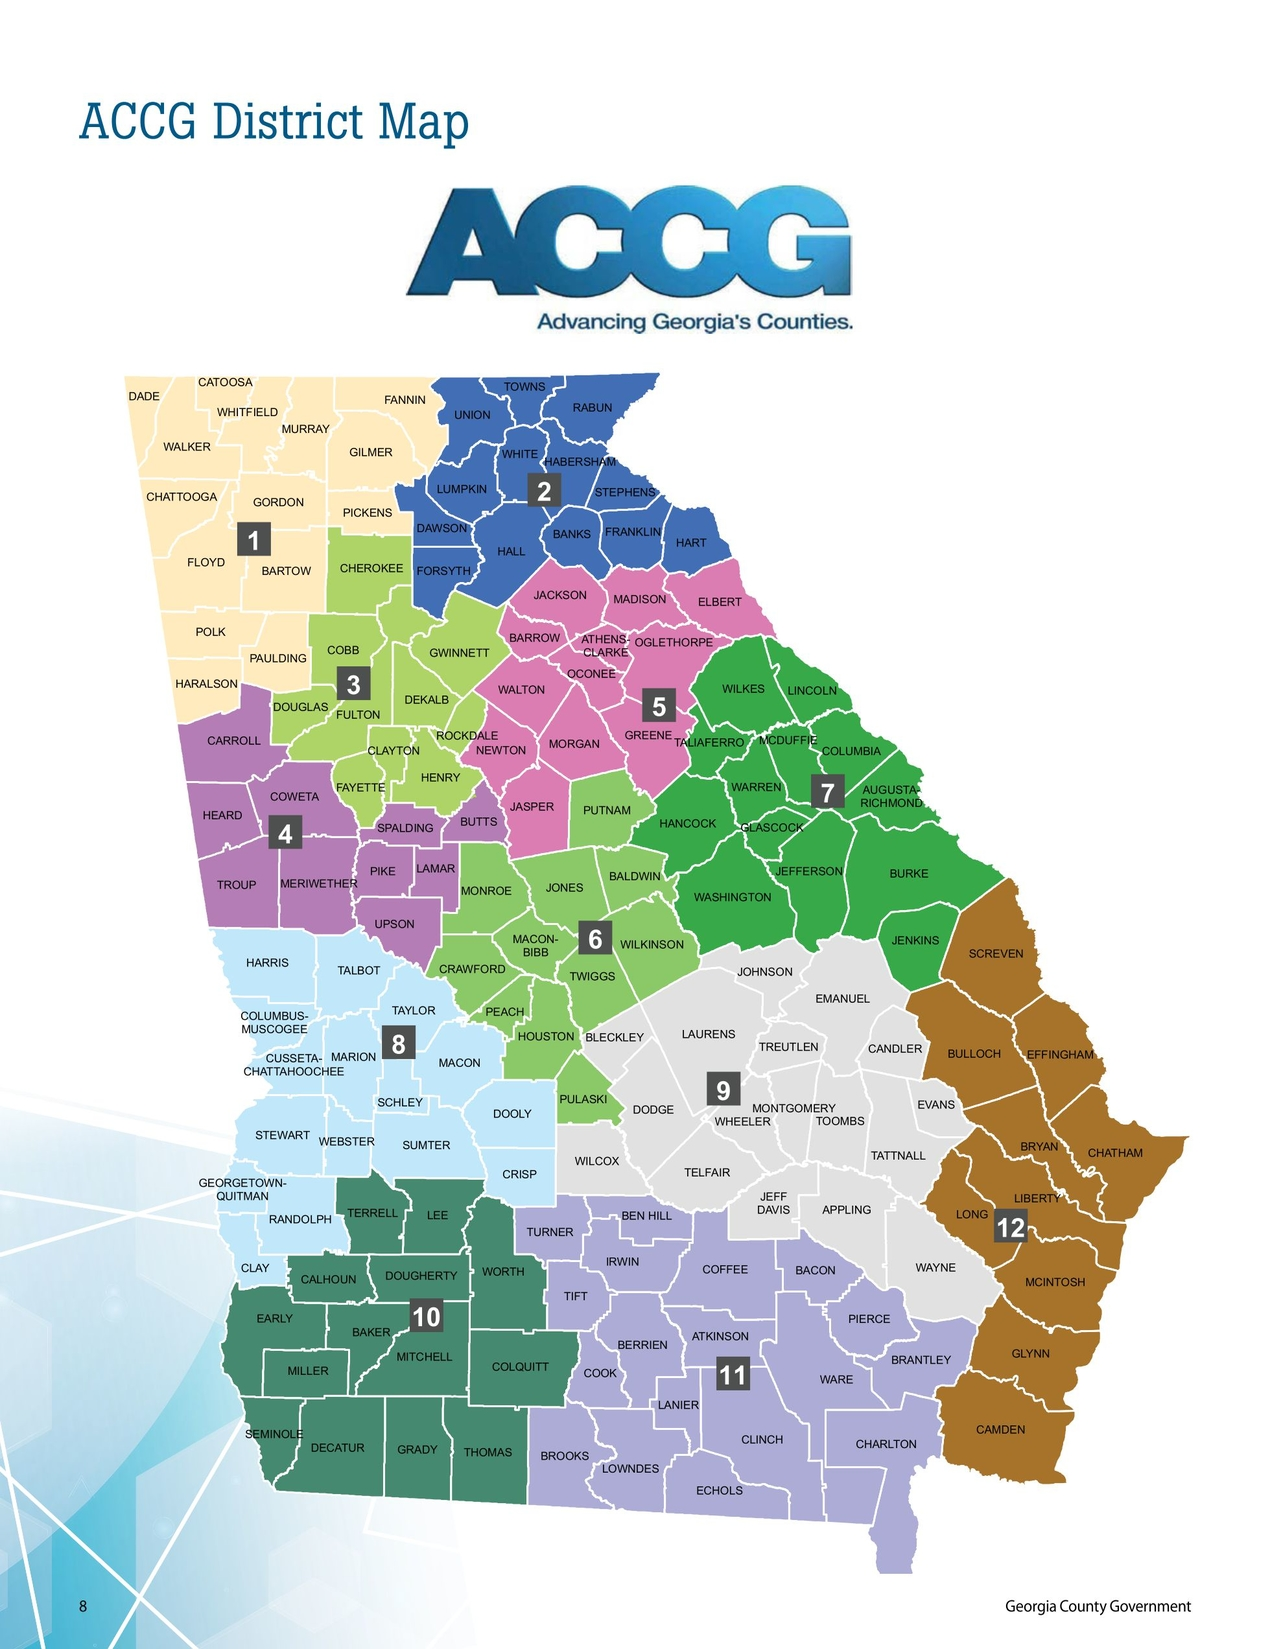 Georgia County Government 2018 Member Services Guide